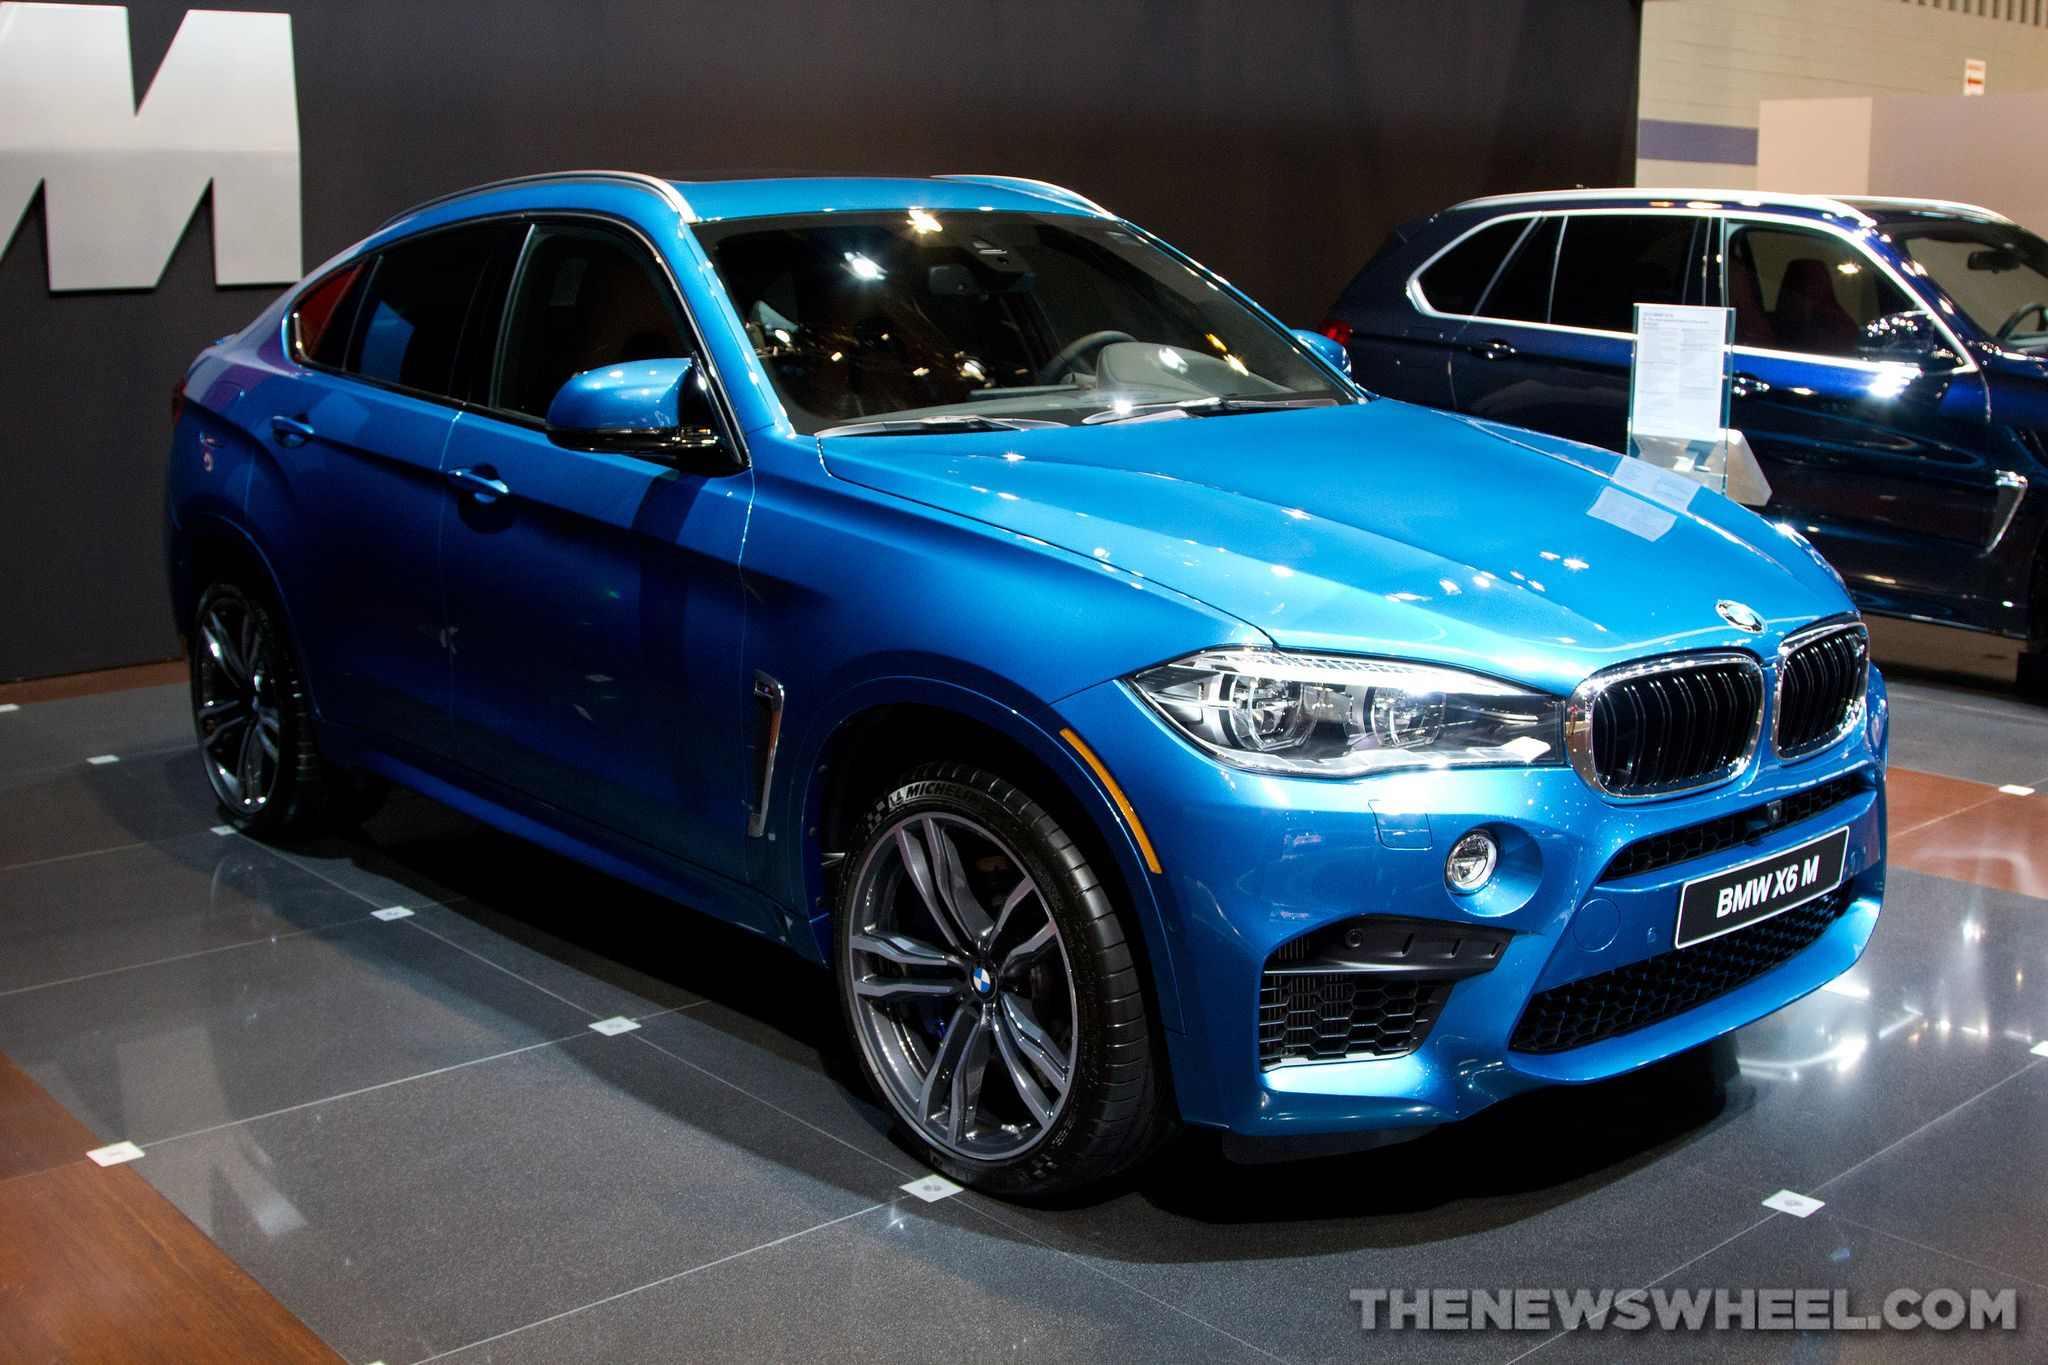 Spacious and Speedy The All New 2016 BMW X6 M New from